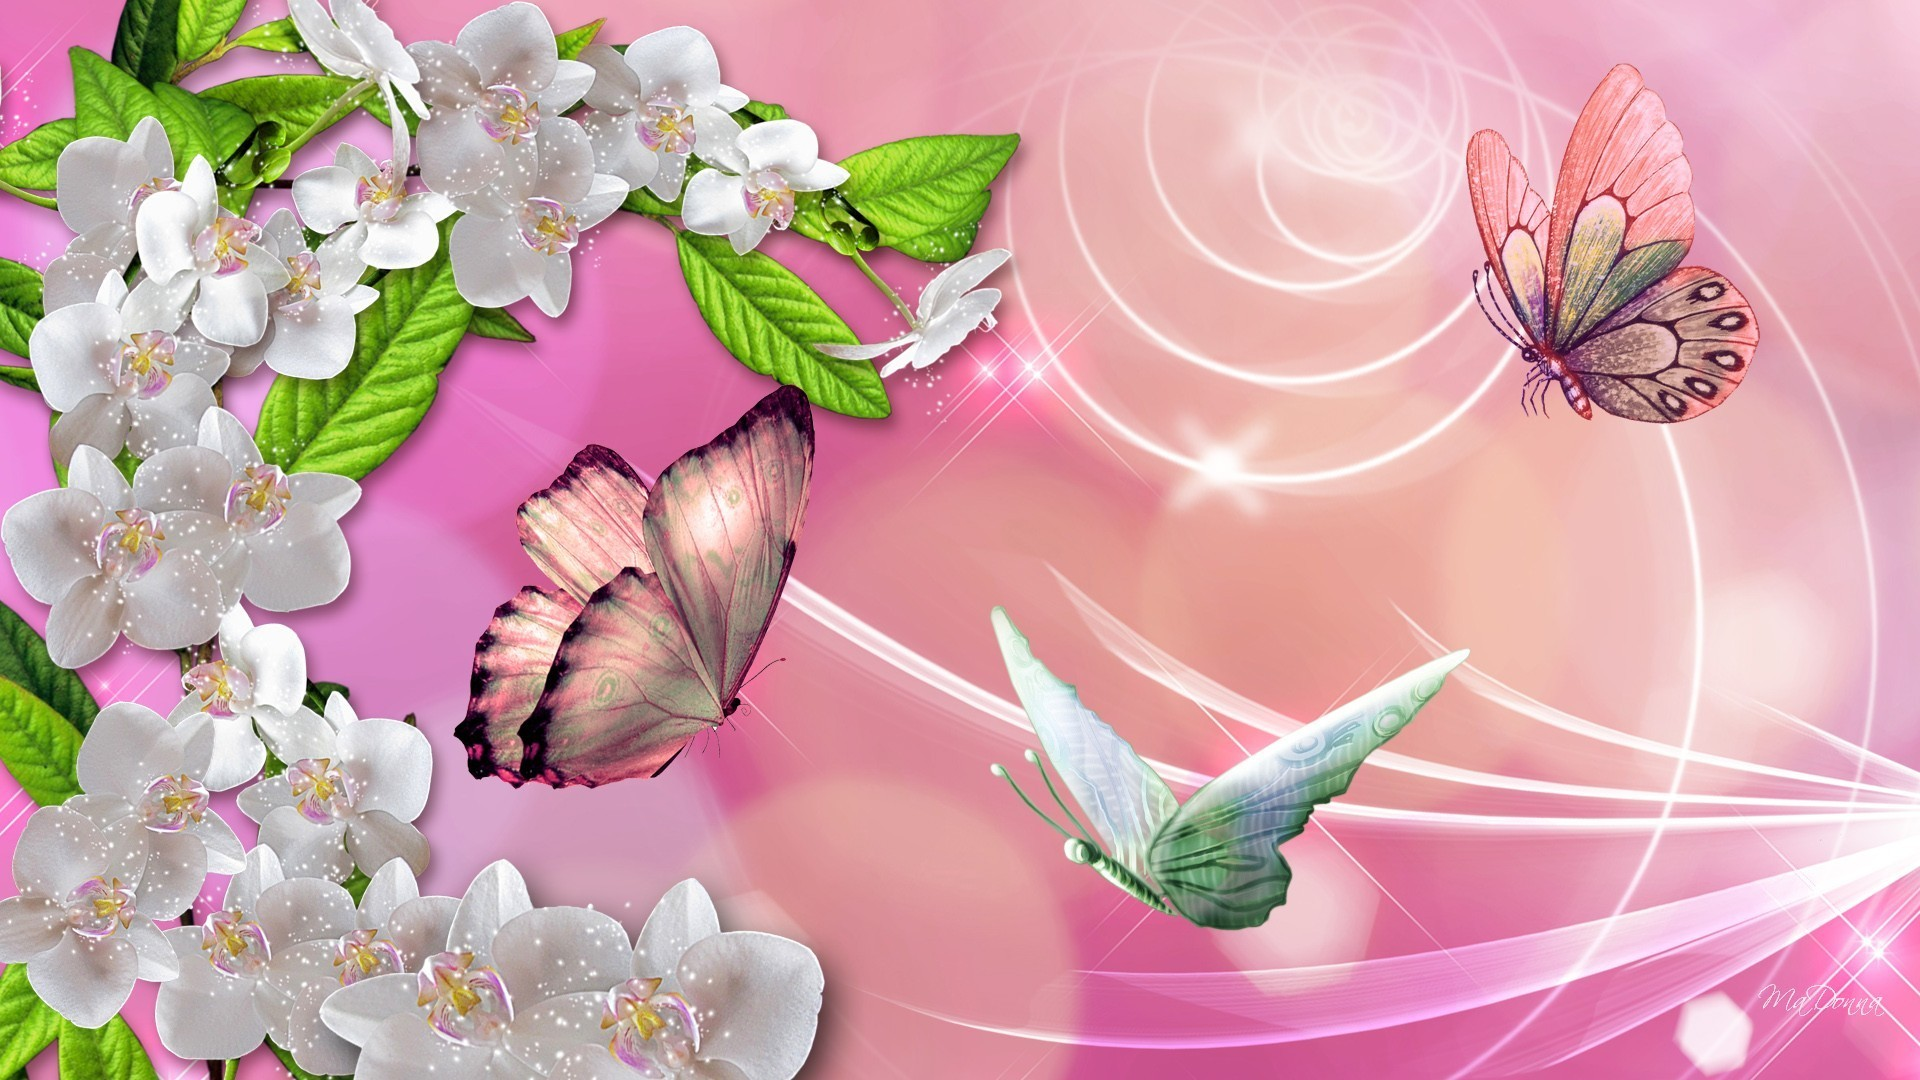 Butterflies Tag – Leaves Swrils Orchids Butterflies Magical Spring Flowers  Summer Pink Sparkles Silk Wallpapers In